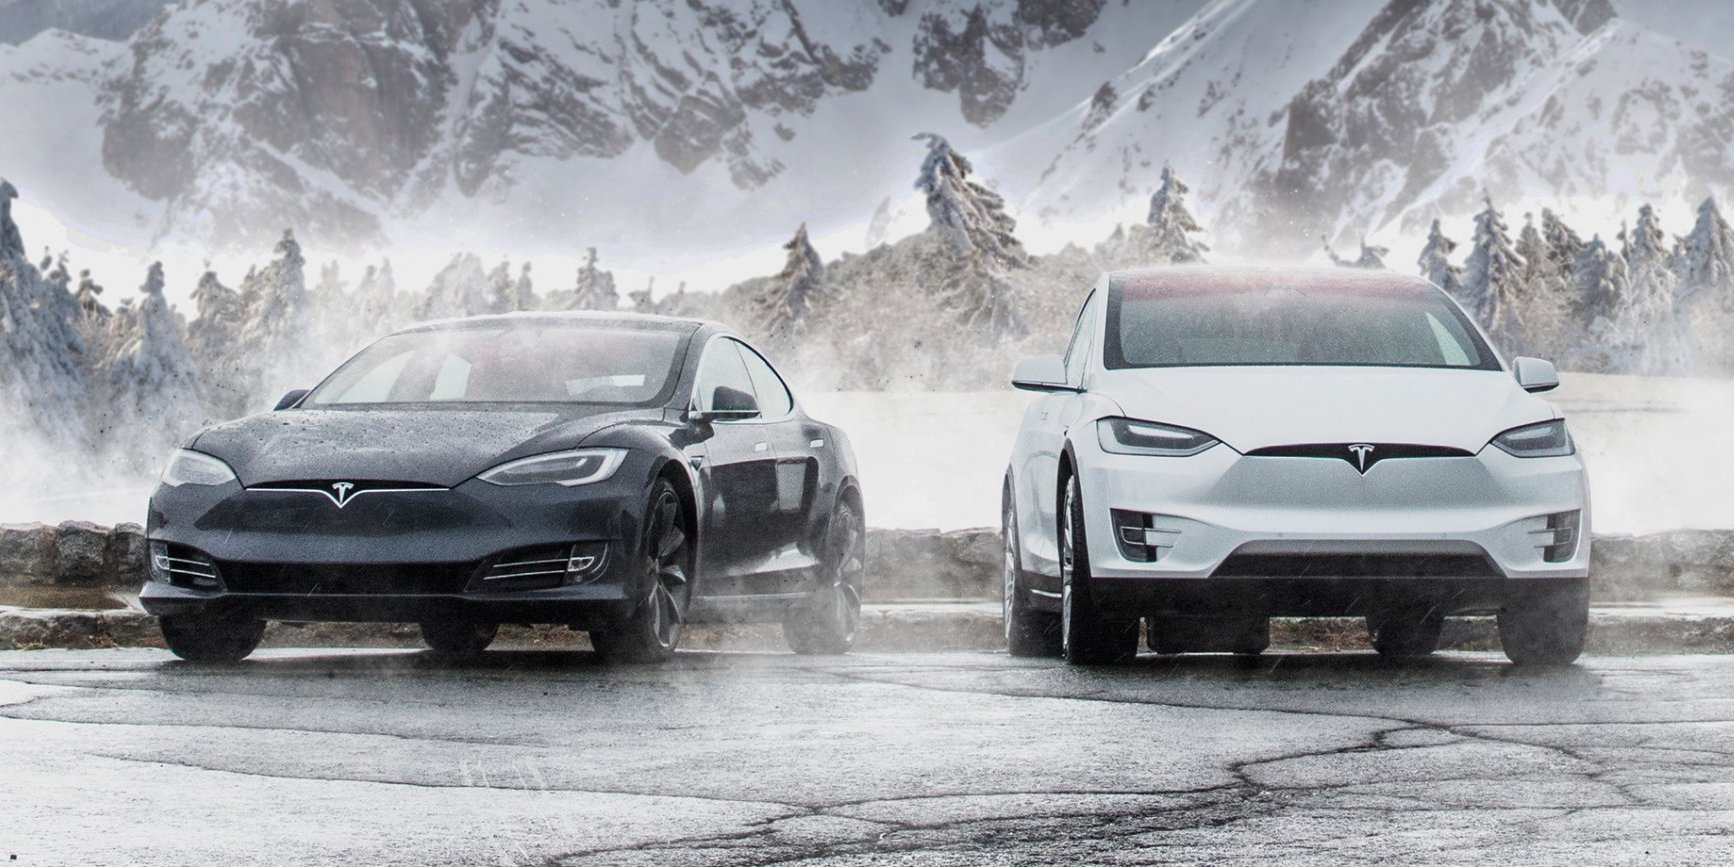 tesla-norway-winter-snow.jpg